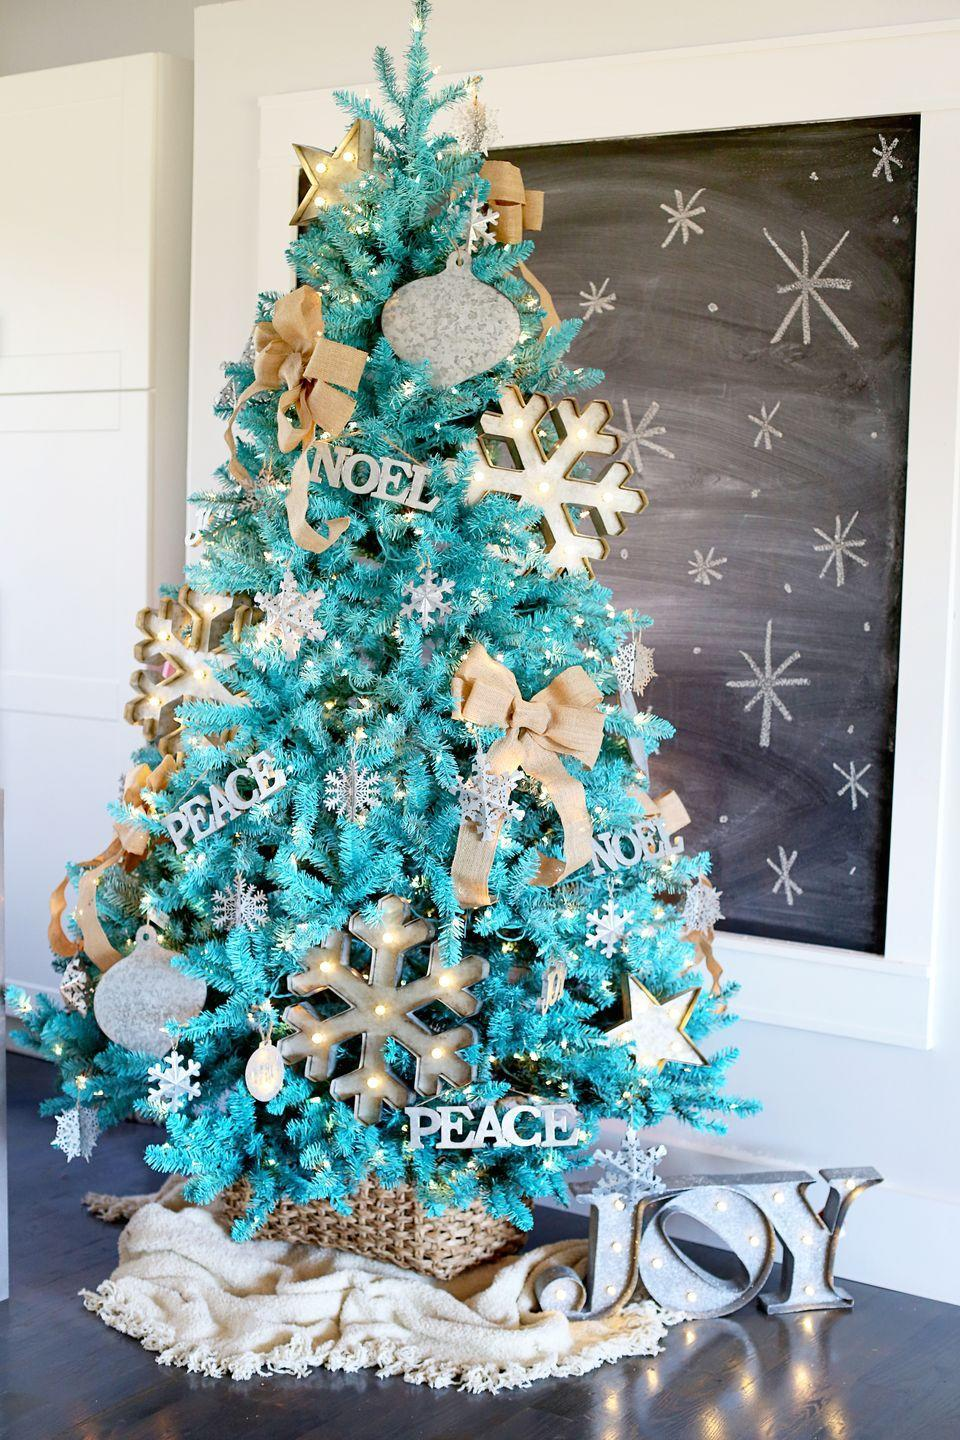 "<p>If Christmas is your favorite holiday, you may find yourself erring toward an exaggerated tree that truly reflects your love of the season. The formula, as proven by <a href=""http://www.sugarbeecrafts.com/2015/11/rustic-modern-dream-tree-reveal.html"" rel=""nofollow noopener"" target=""_blank"" data-ylk=""slk:Sugar Bee Crafts"" class=""link rapid-noclick-resp"">Sugar Bee Crafts</a>: giant ornaments, giant snowflakes, and a tree color that breaks the norm, like <a href=""https://www.elledecor.com/design-decorate/color/a7825/paint-colors-designers-hate/"" rel=""nofollow noopener"" target=""_blank"" data-ylk=""slk:wintry turquoise"" class=""link rapid-noclick-resp"">wintry turquoise</a>. </p>"